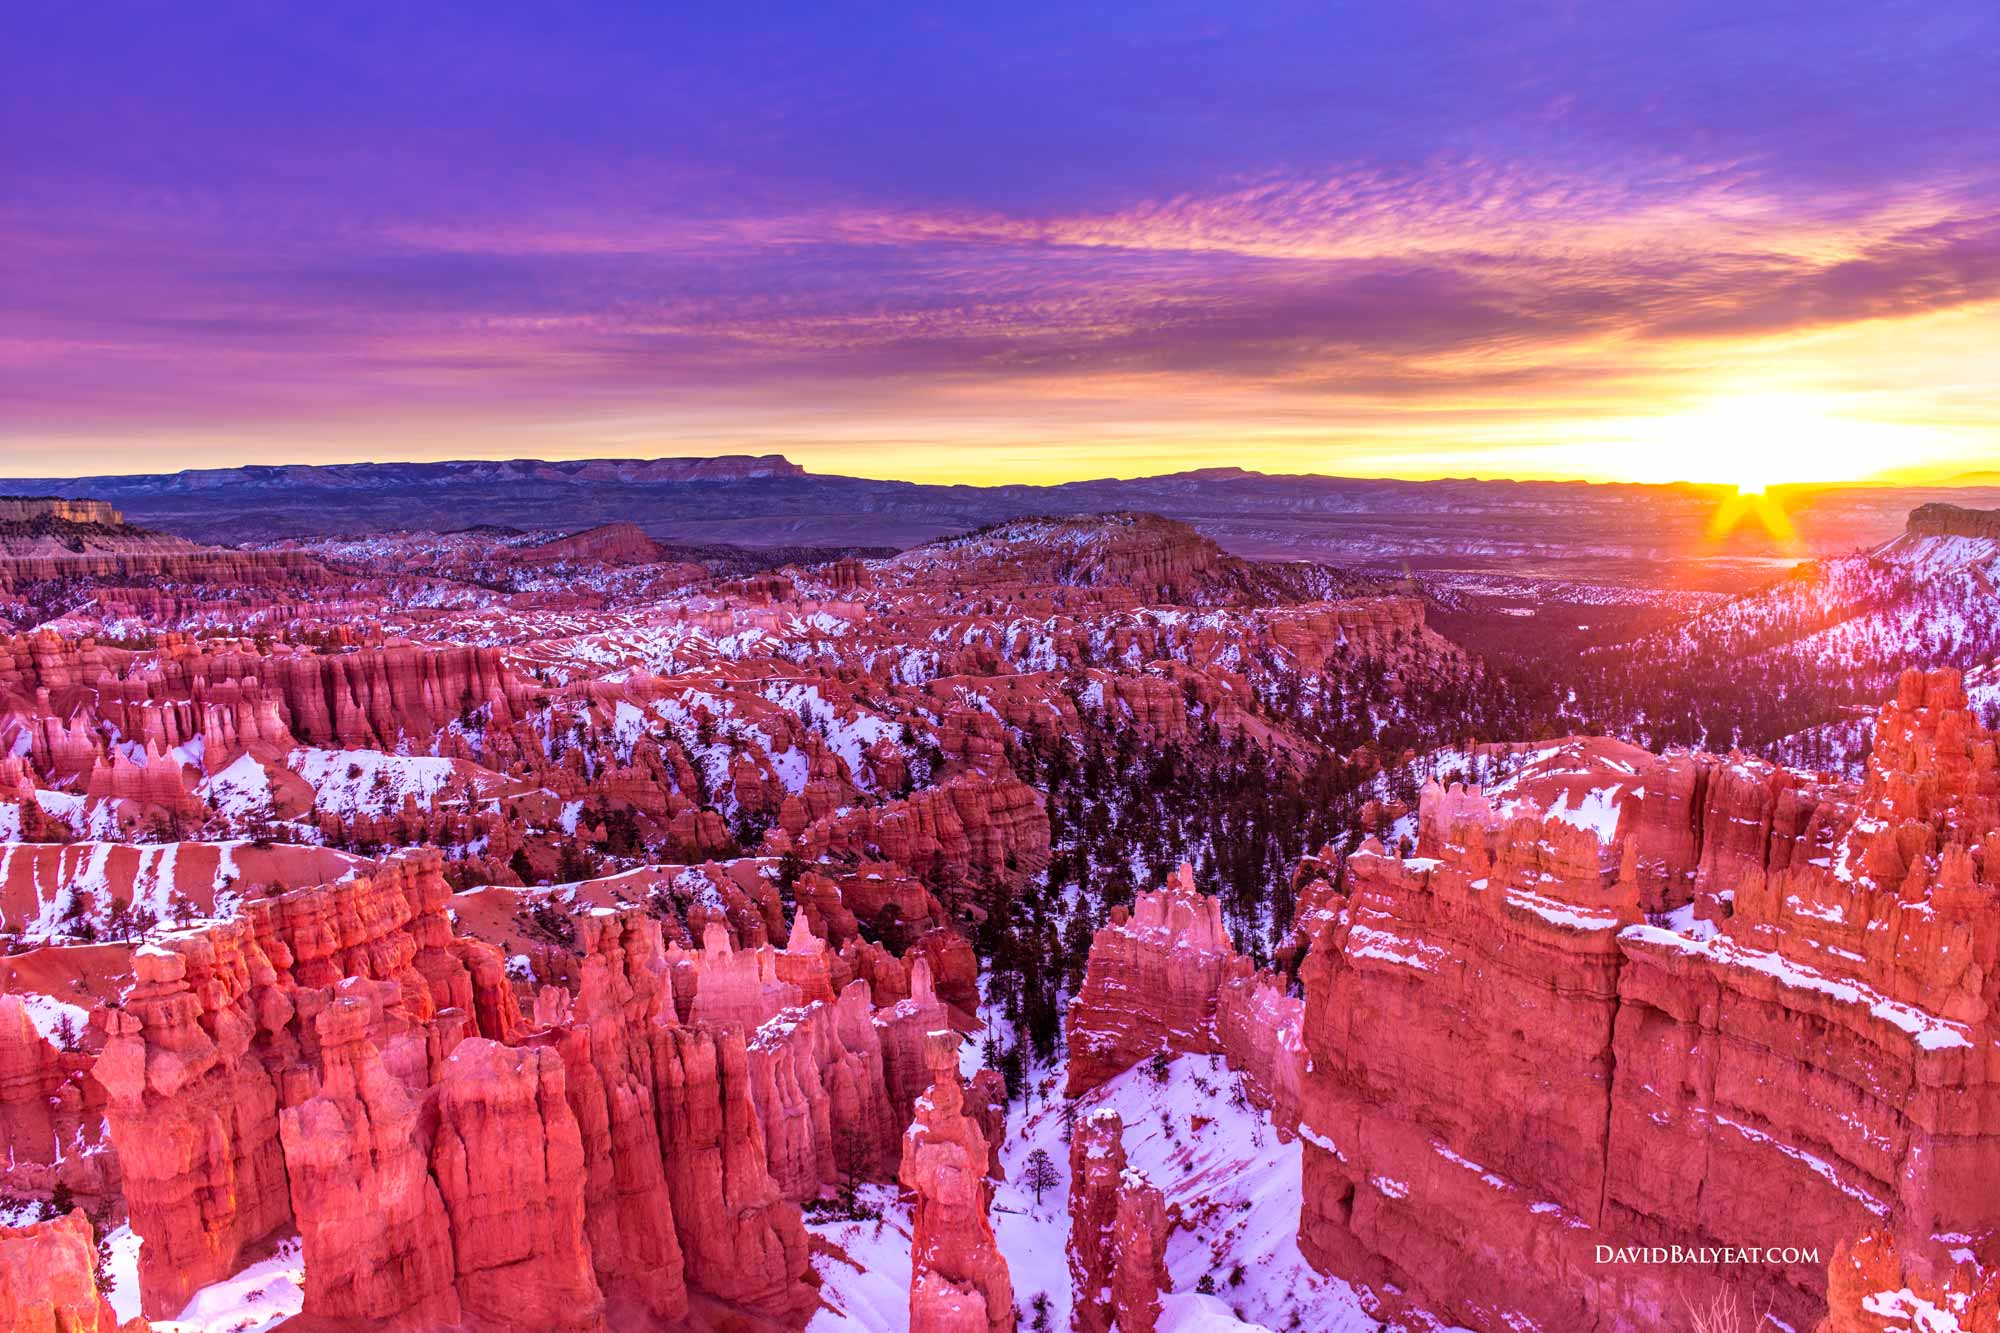 Rustic Fall Wallpaper Bryce Canyon Utah David Balyeat Photography